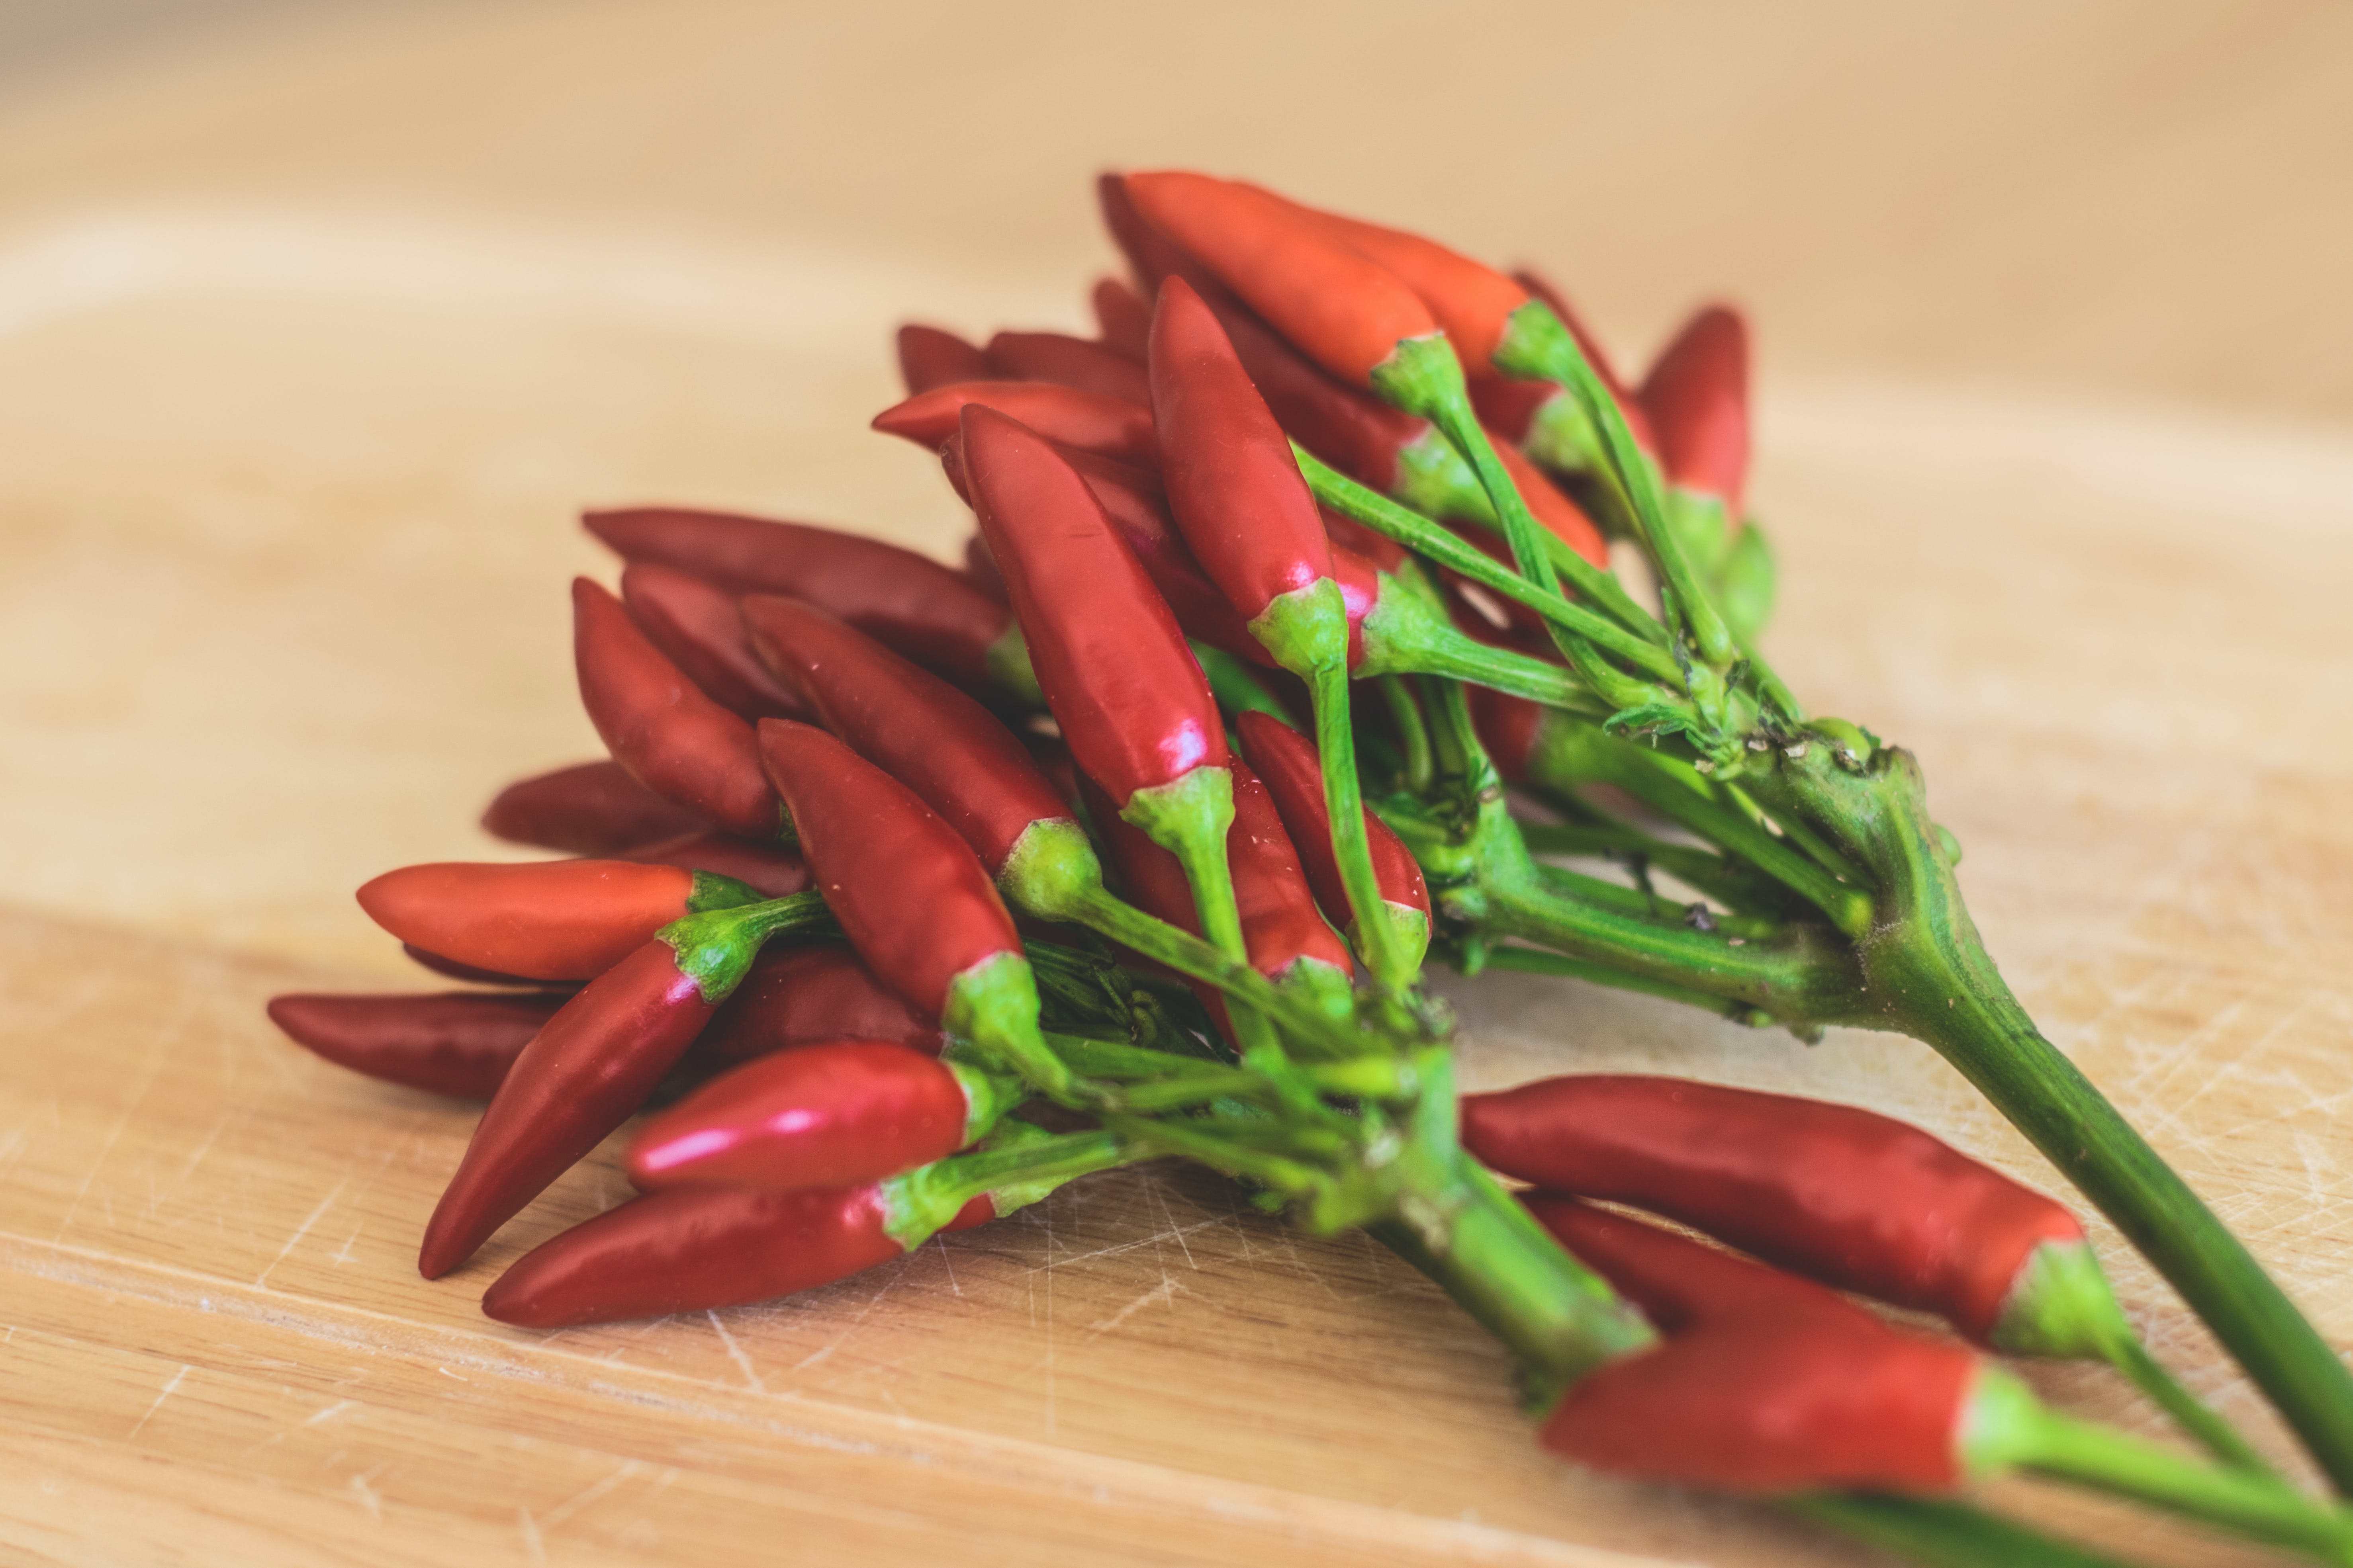 Red Chili Peppers on Brown Wooden Surface